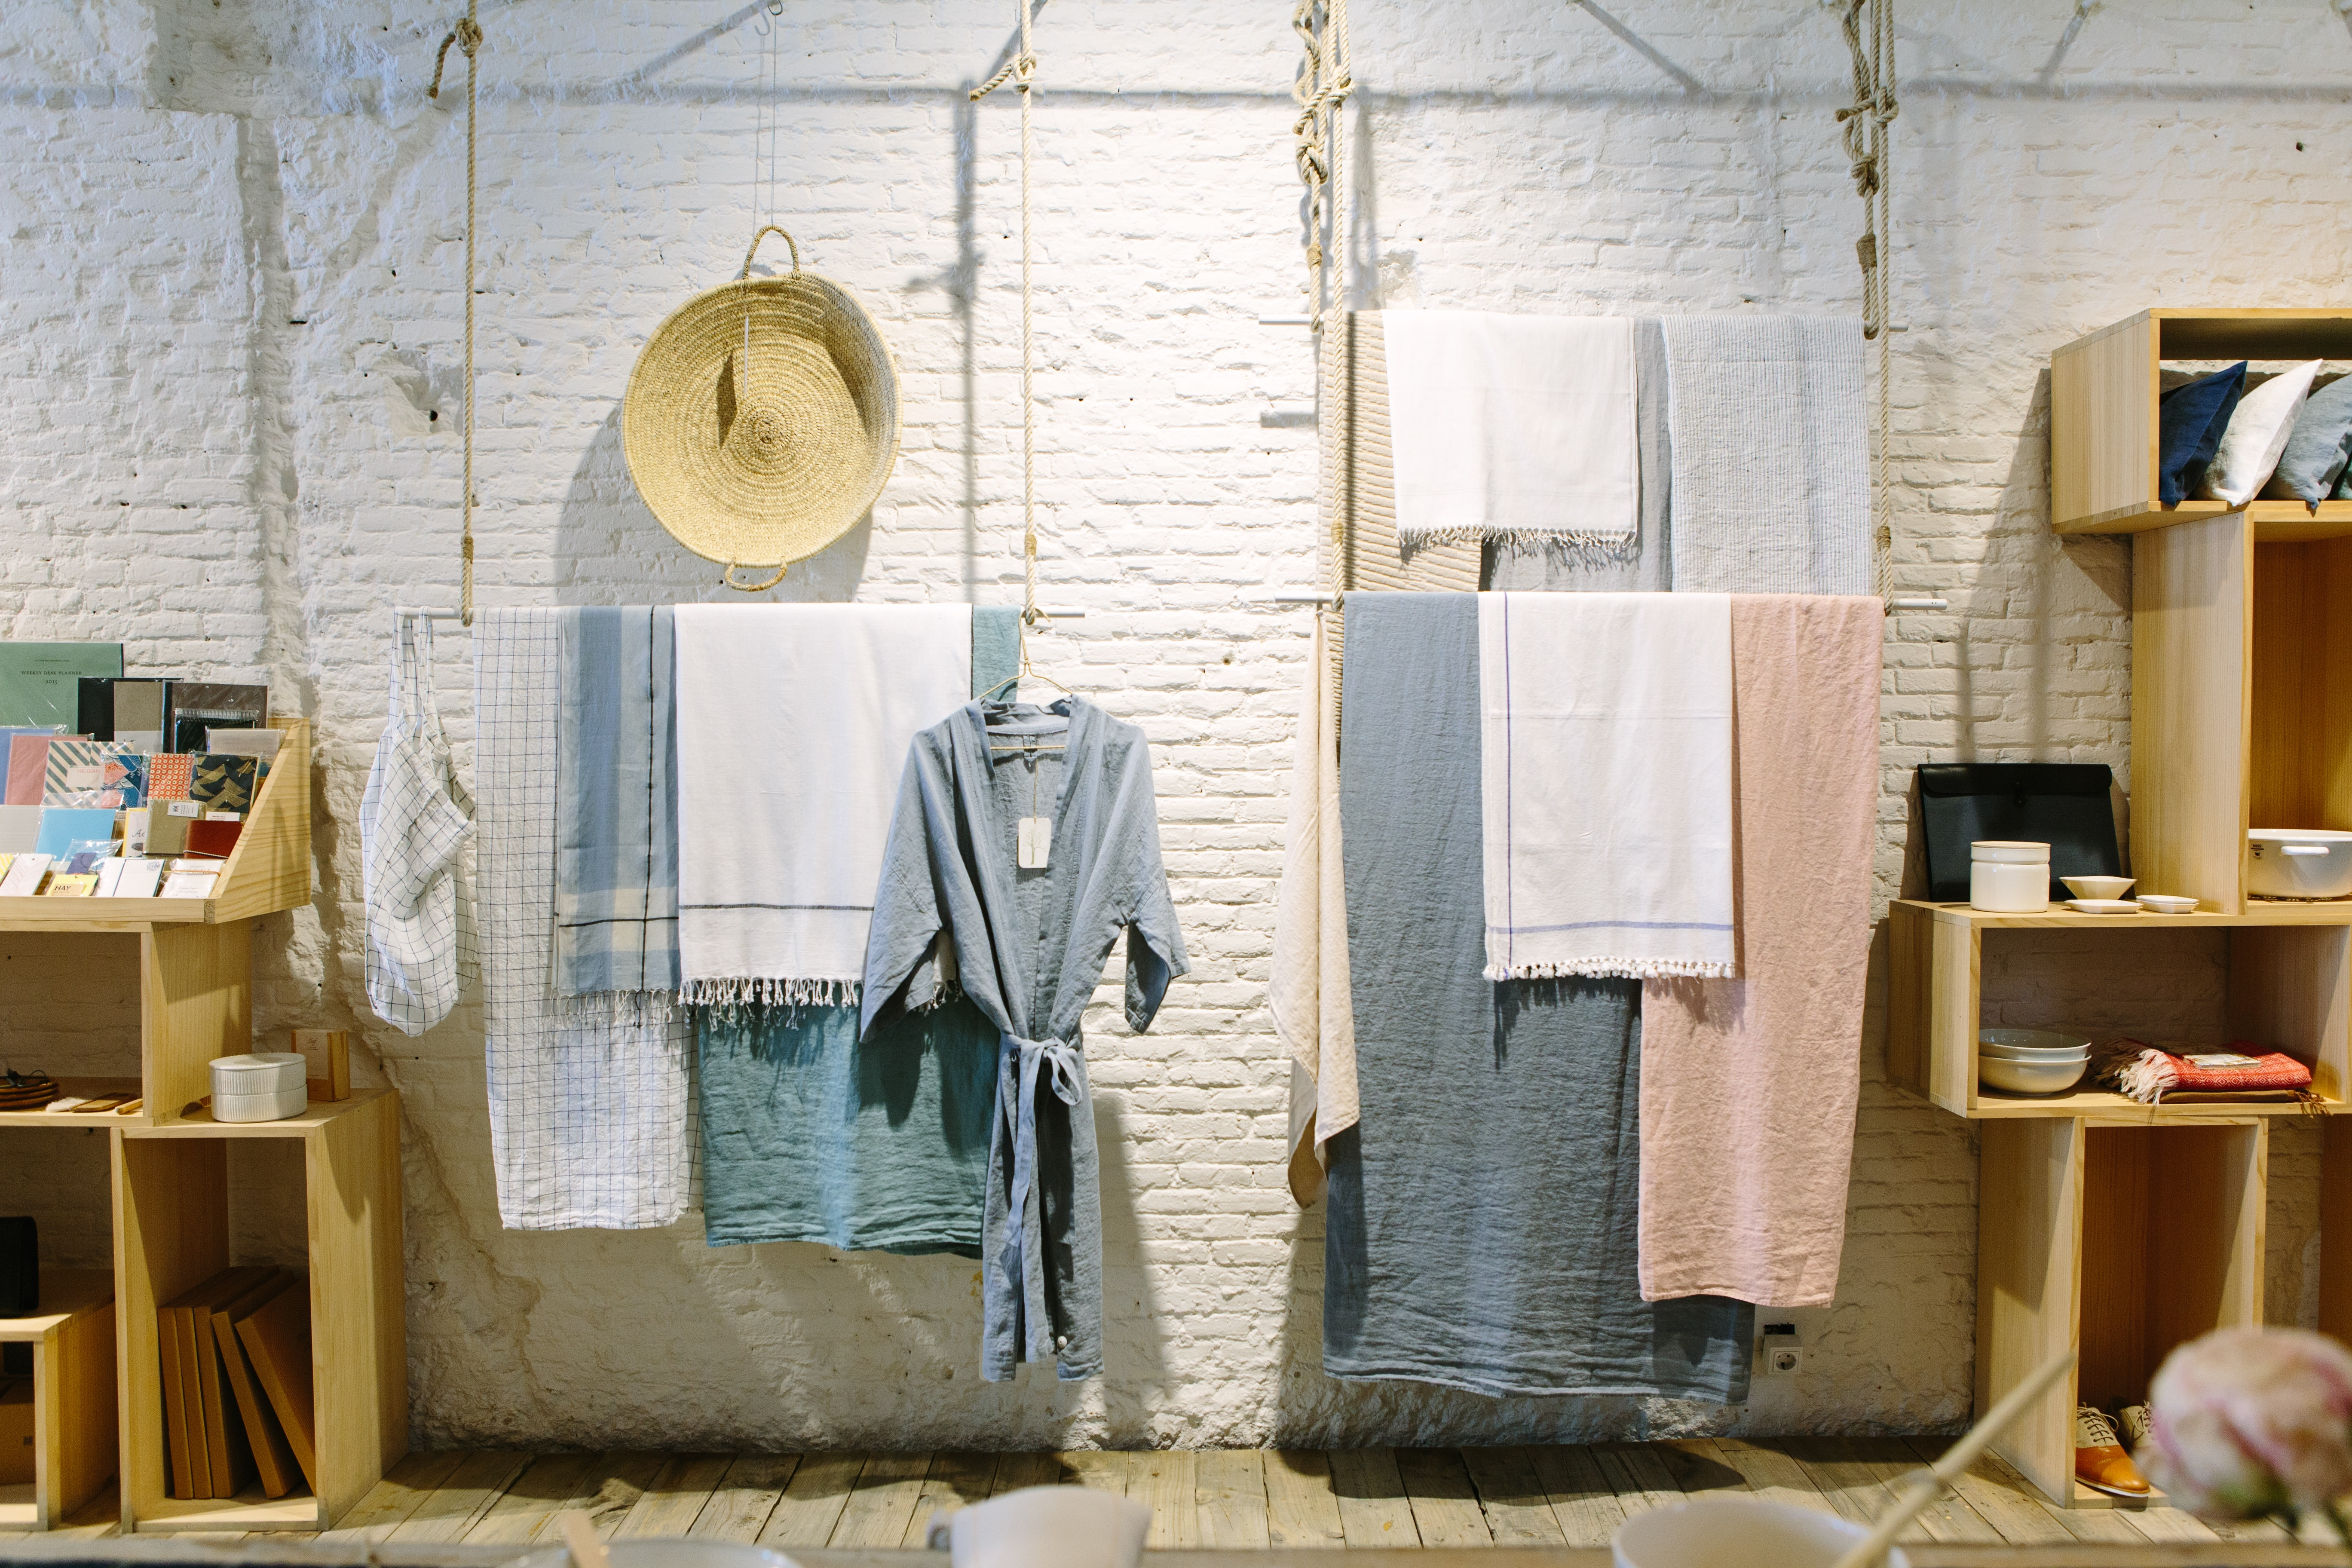 Towels and clothes hanging from a ceiling in an artistic interior